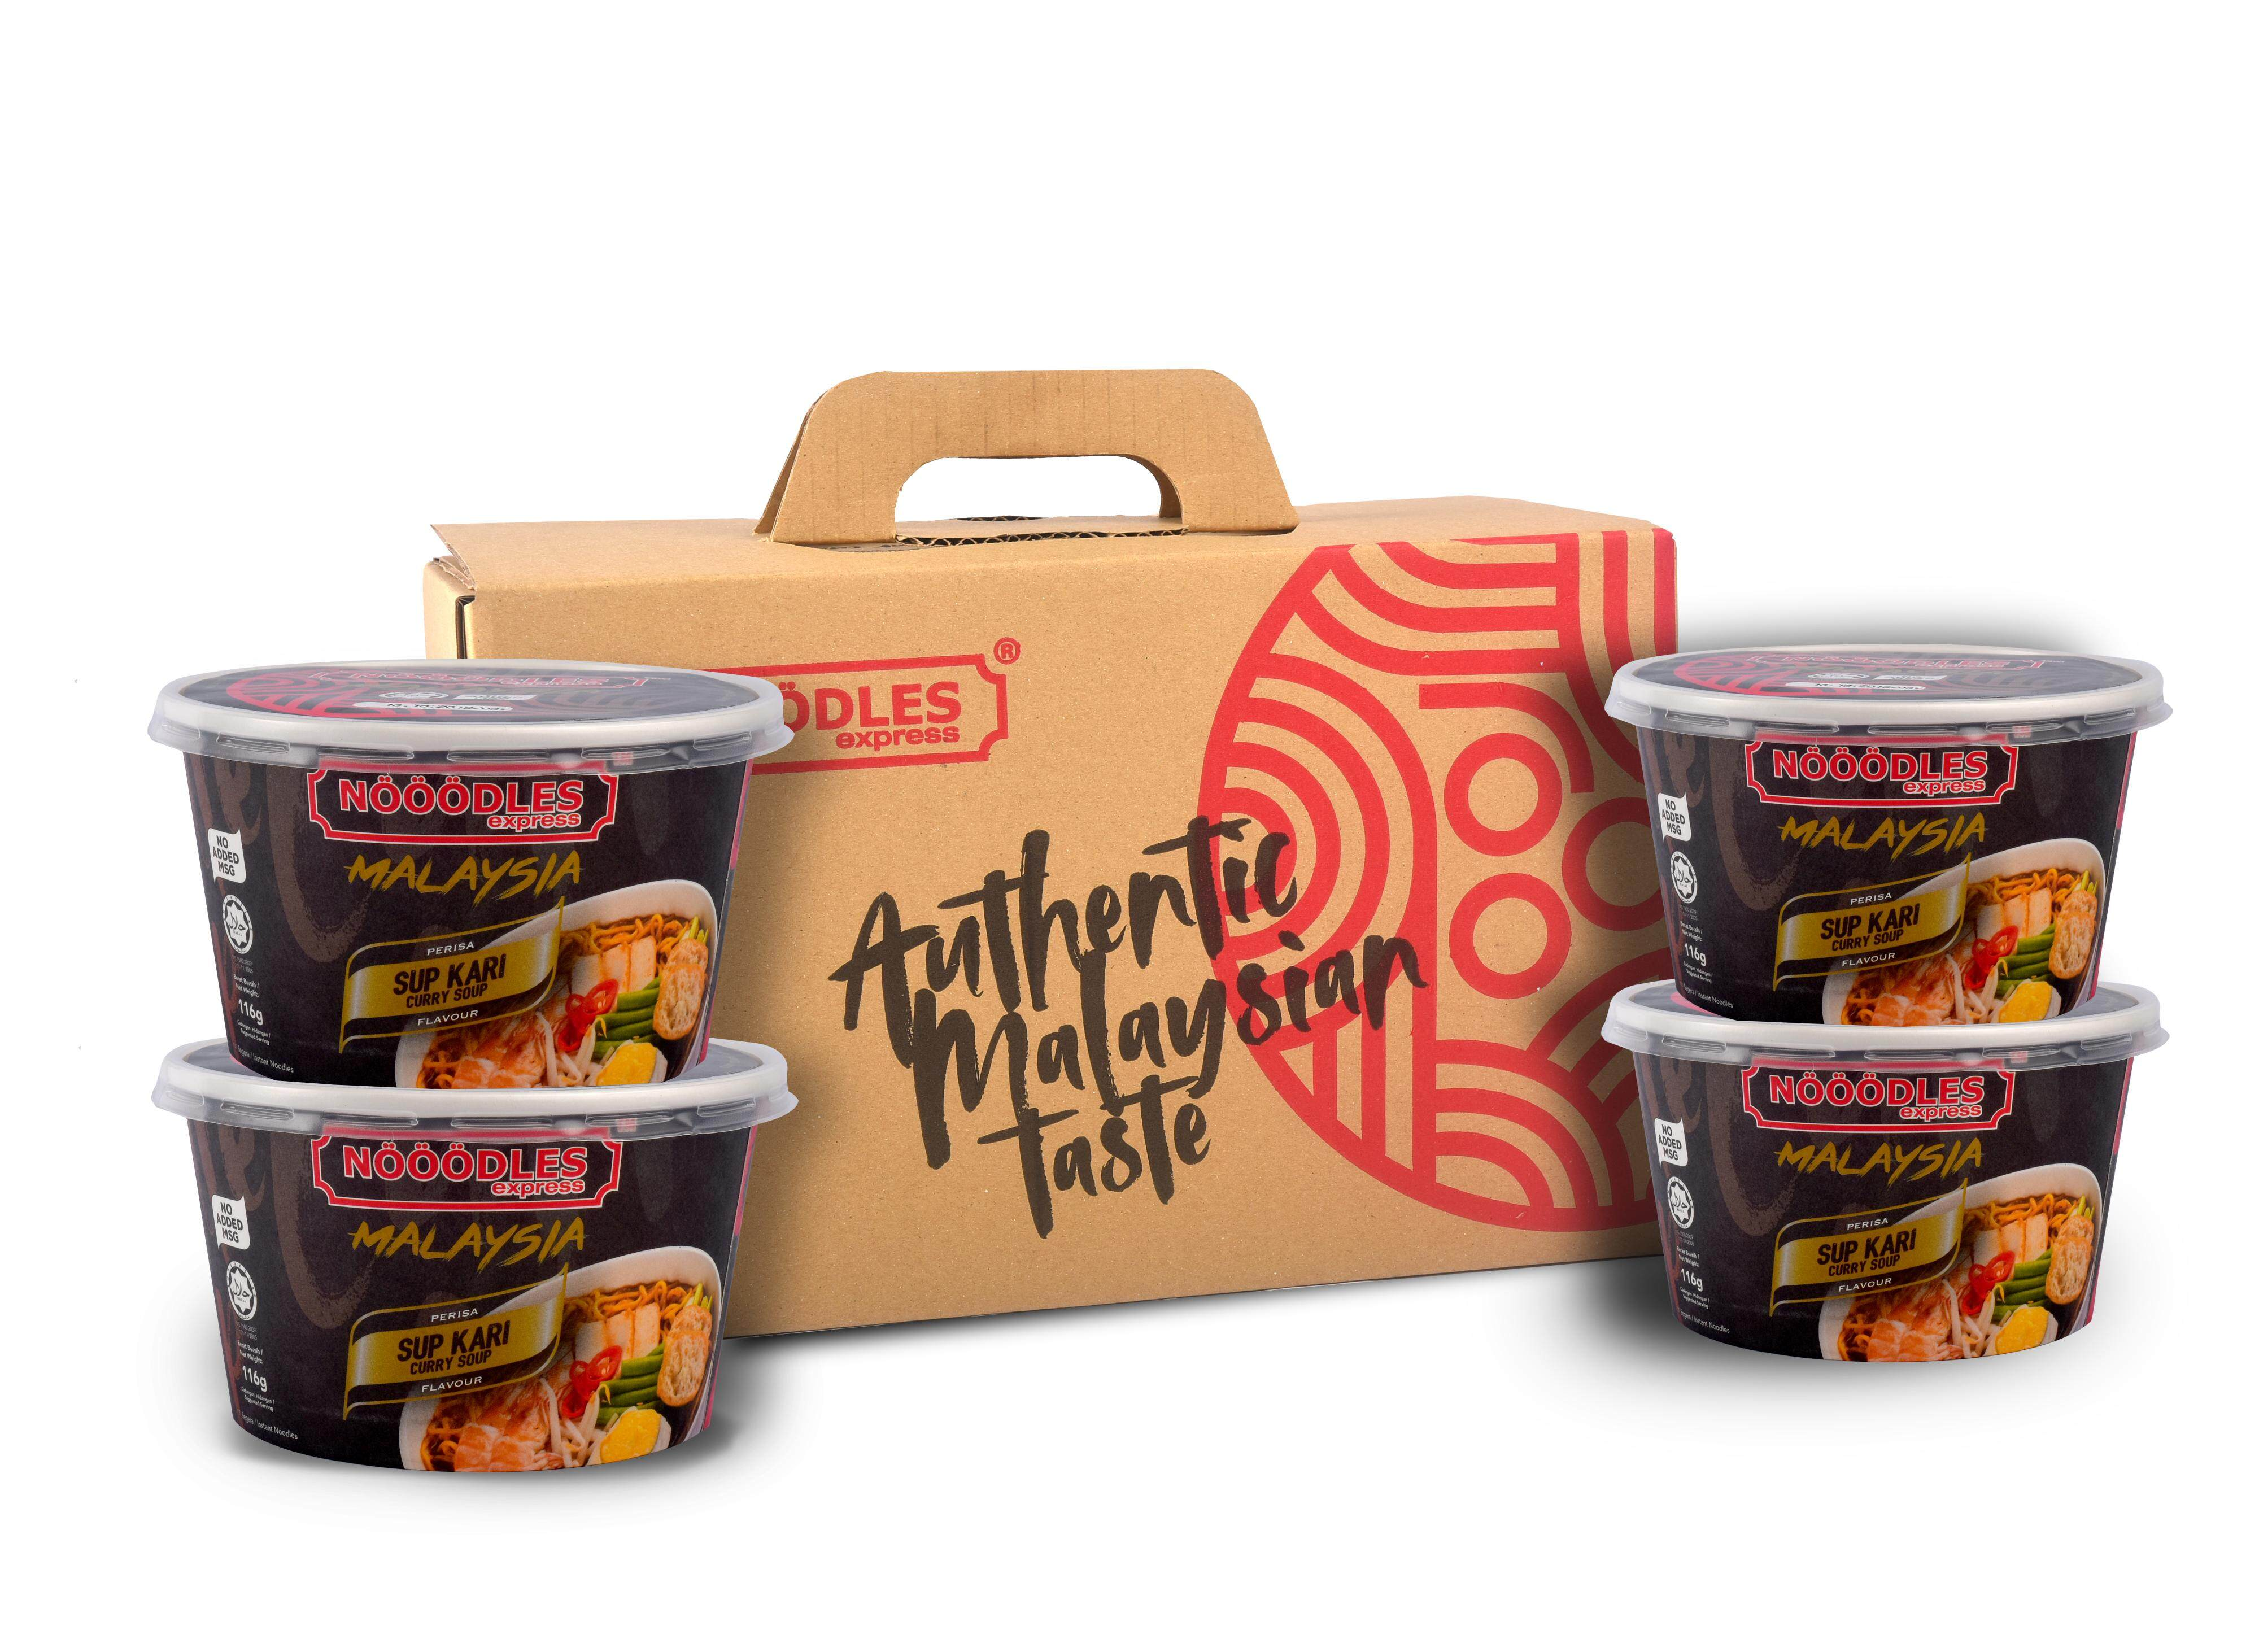 Box of 4 Instant Noodle Curry Soup Flavour (NDLES express) / 4 Mee Segera Perasa Sup Kari (NDLES express)